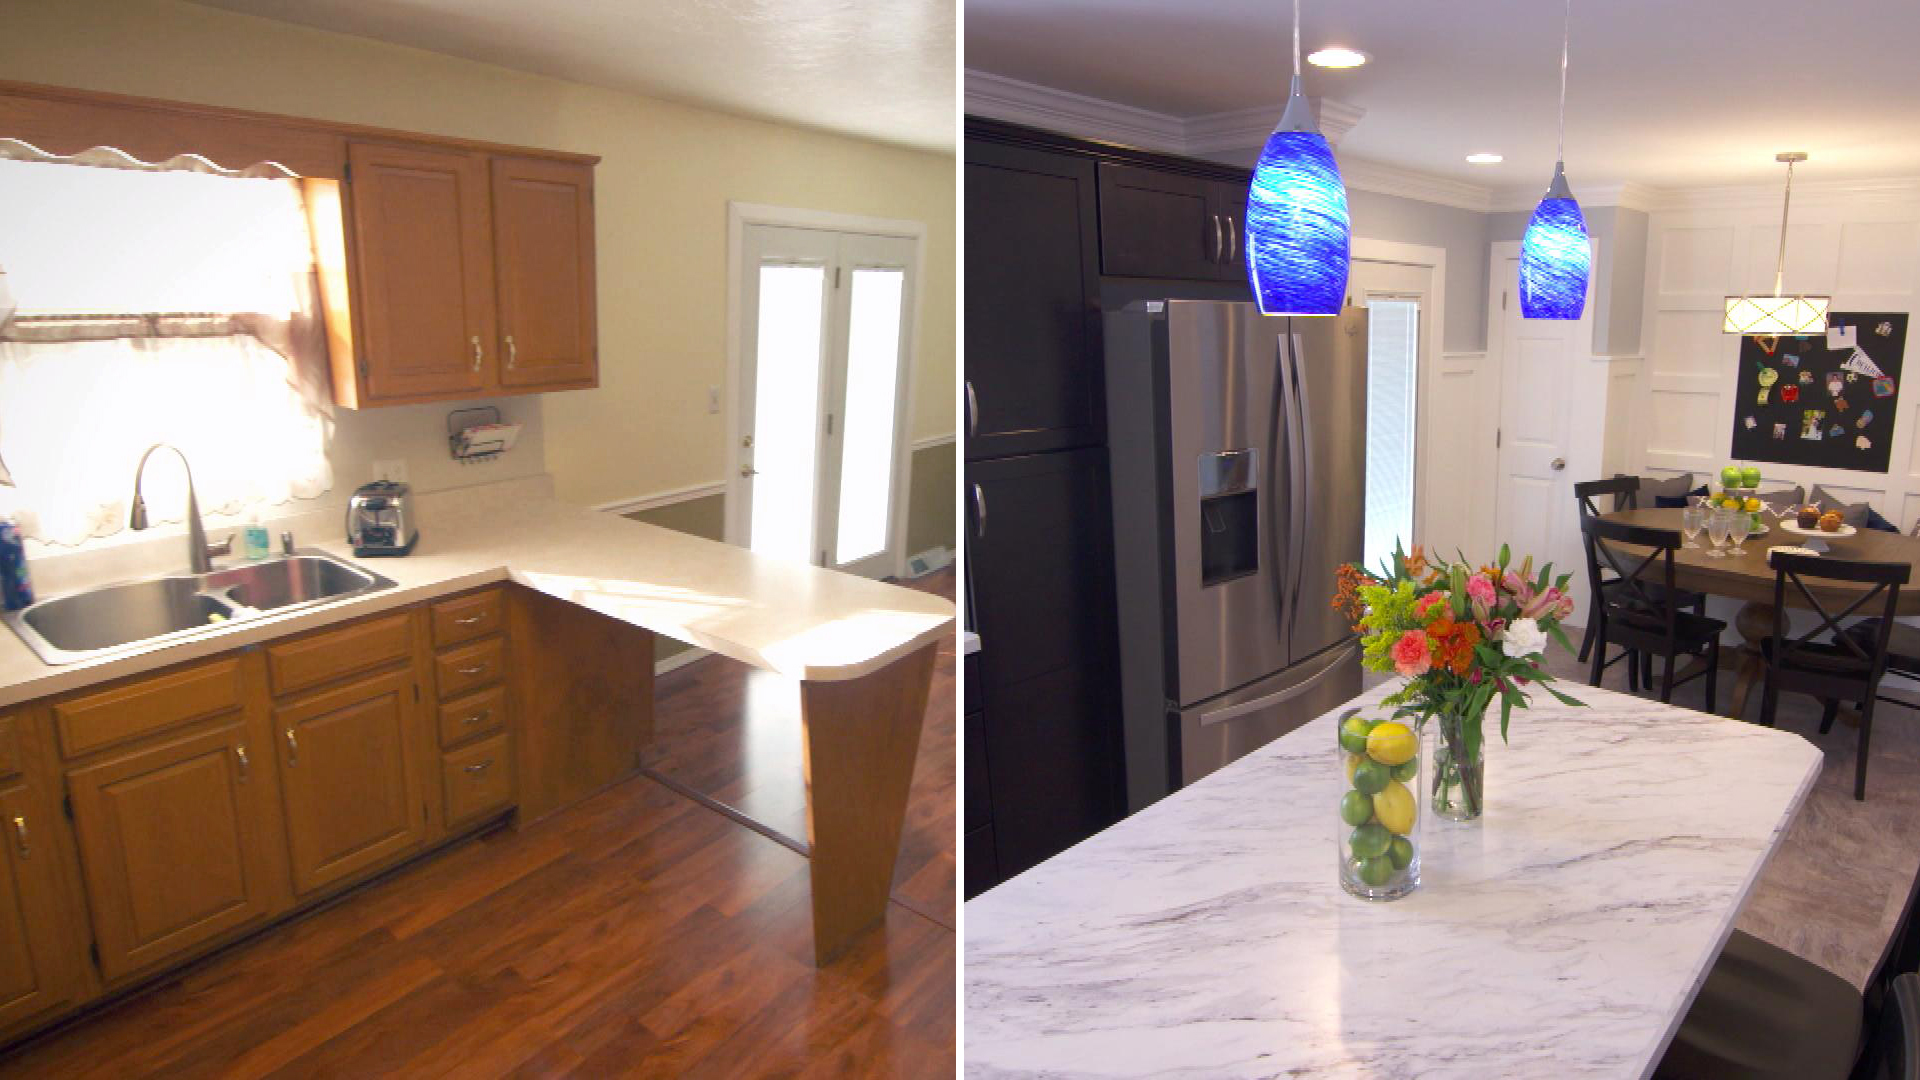 Kitchen Makeover Today And Lowes Kitchen Makeover For Empty Nesters Todaycom